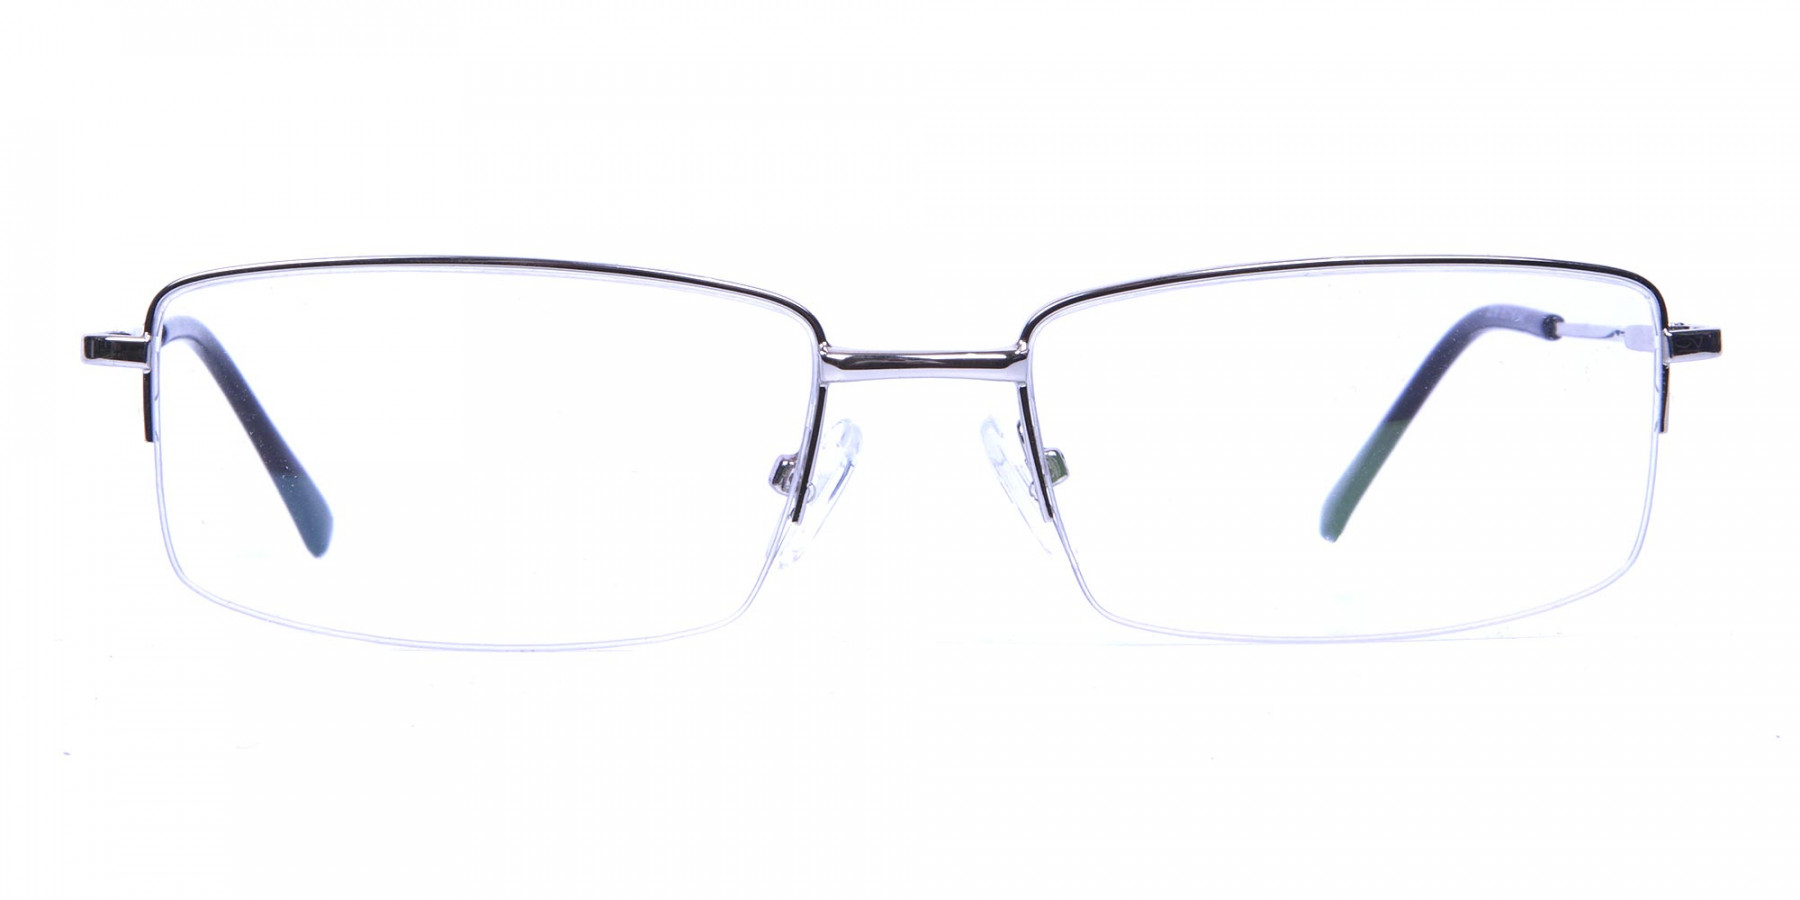 Rectangular glasses in Silver- 1